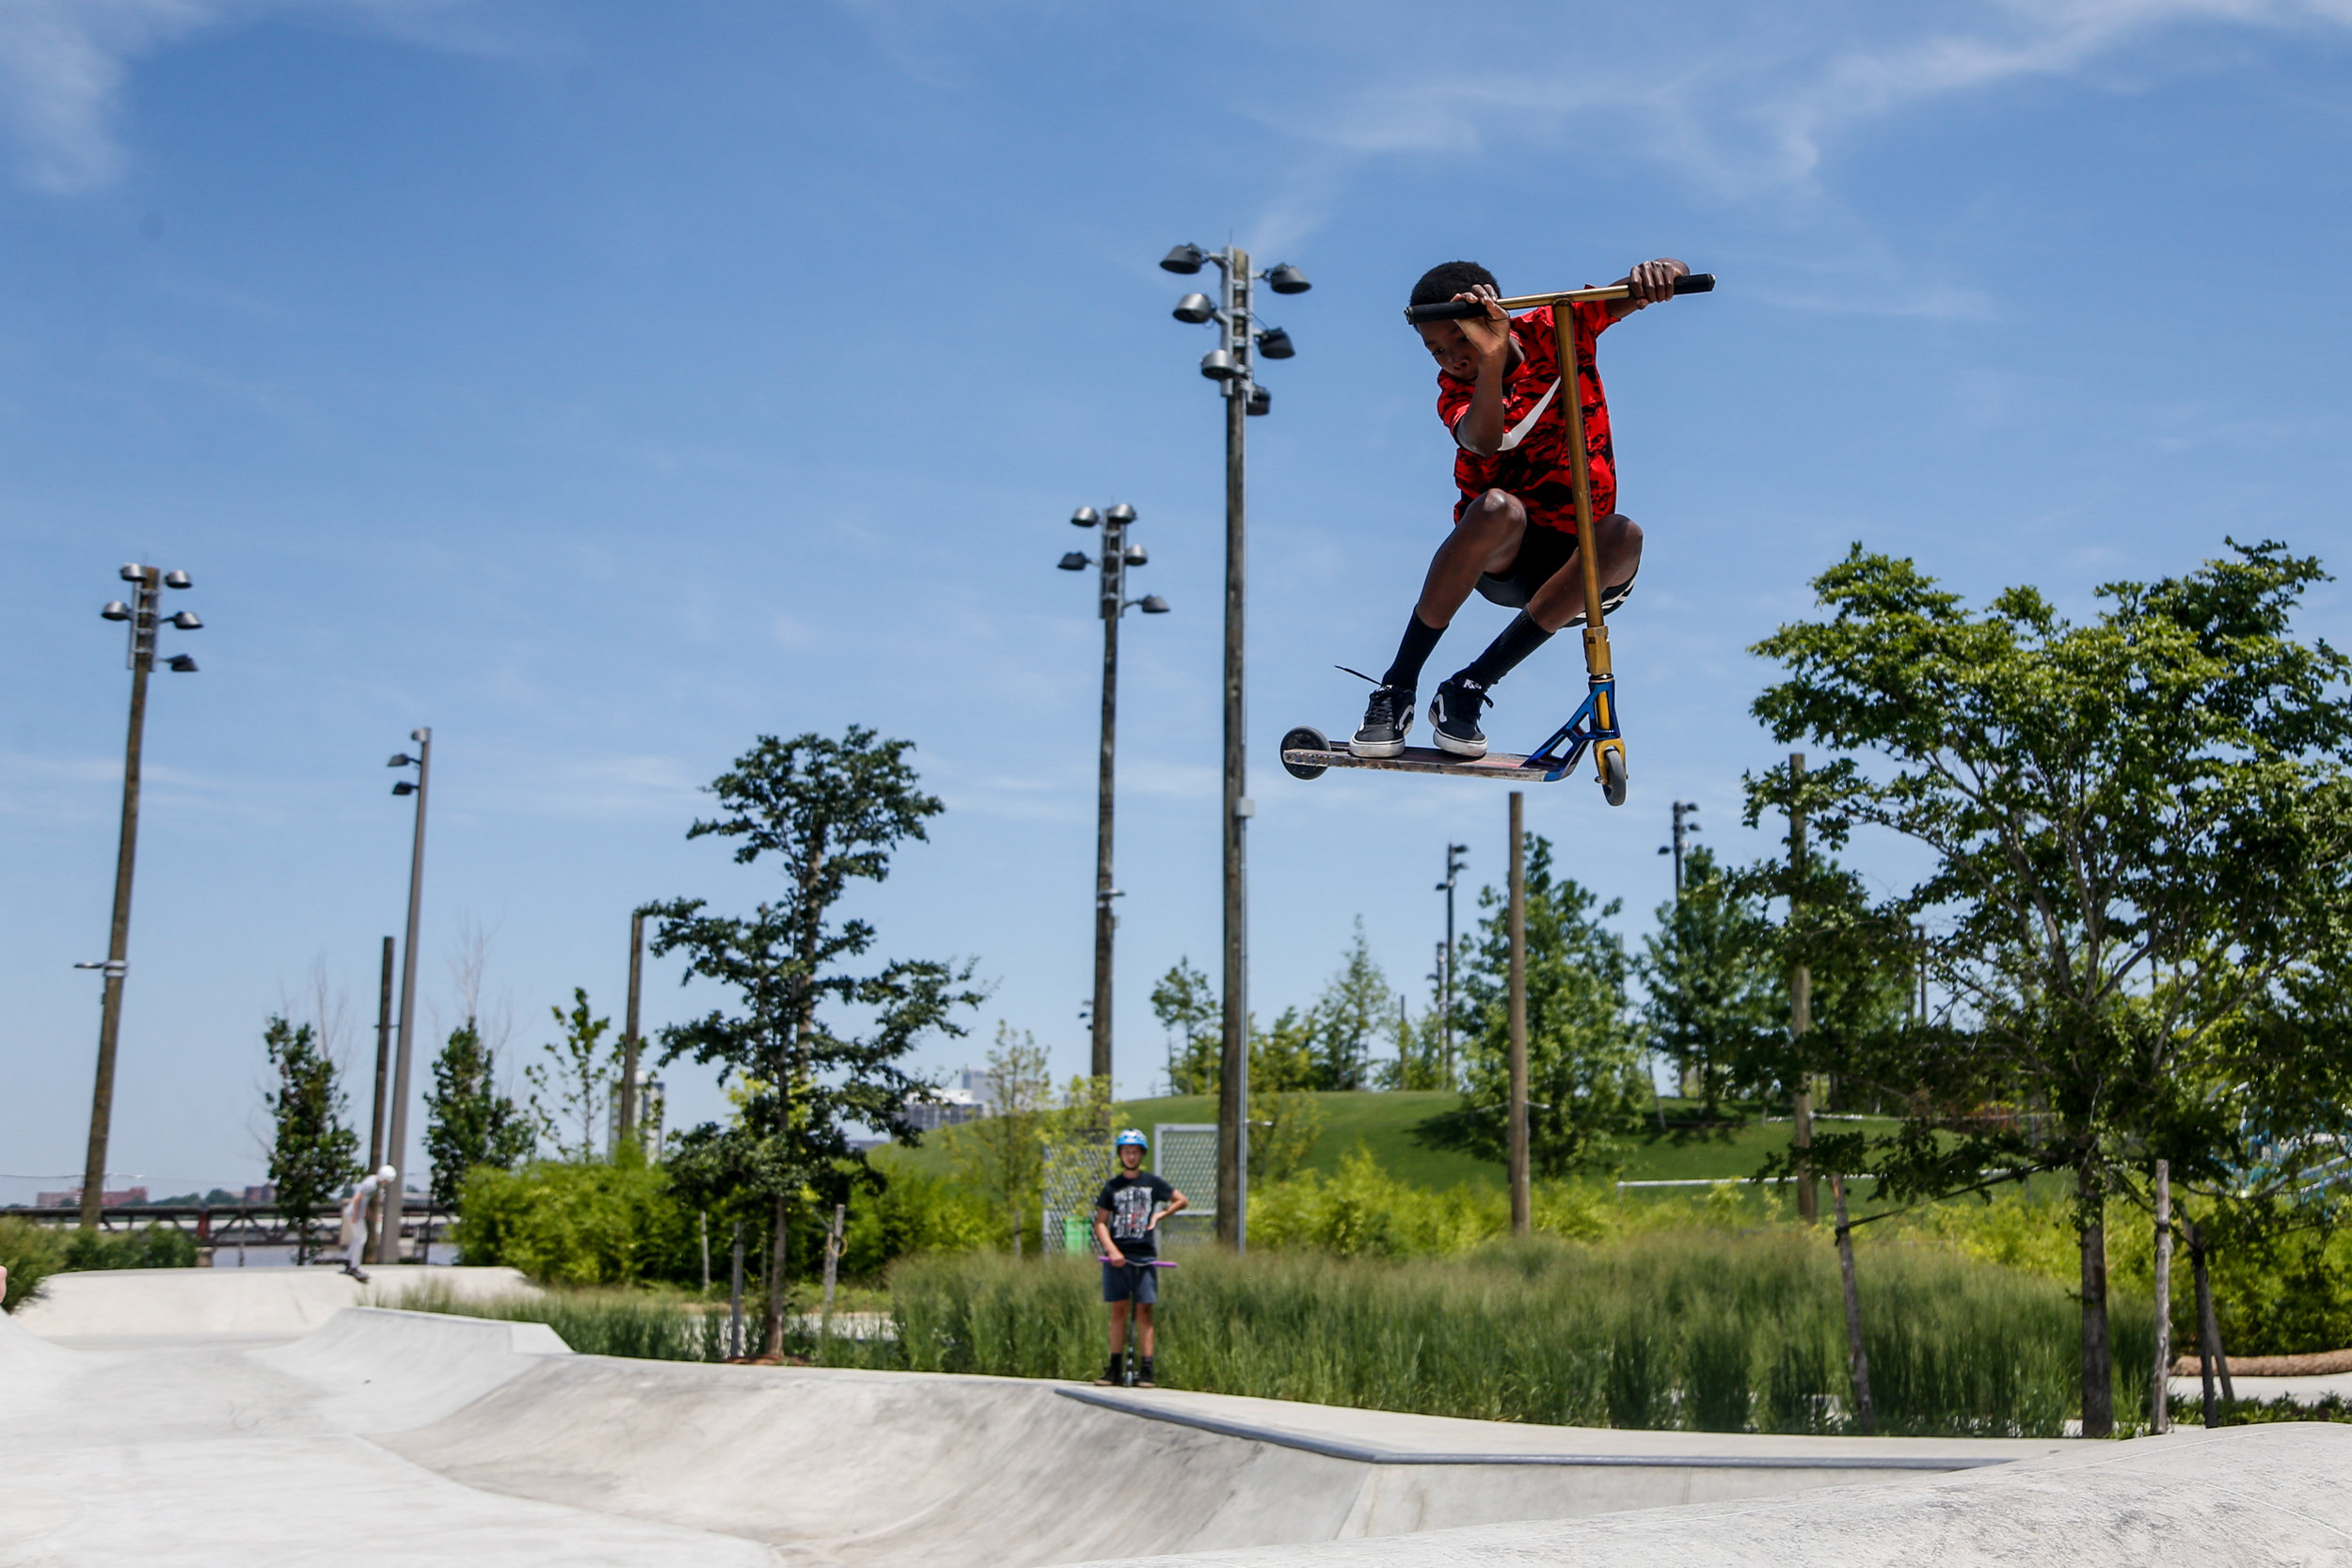 Isaiah Bridges, 13, soars on a scooter at the Skate Park in Tulsa's Gathering Place on June 10, 2019.